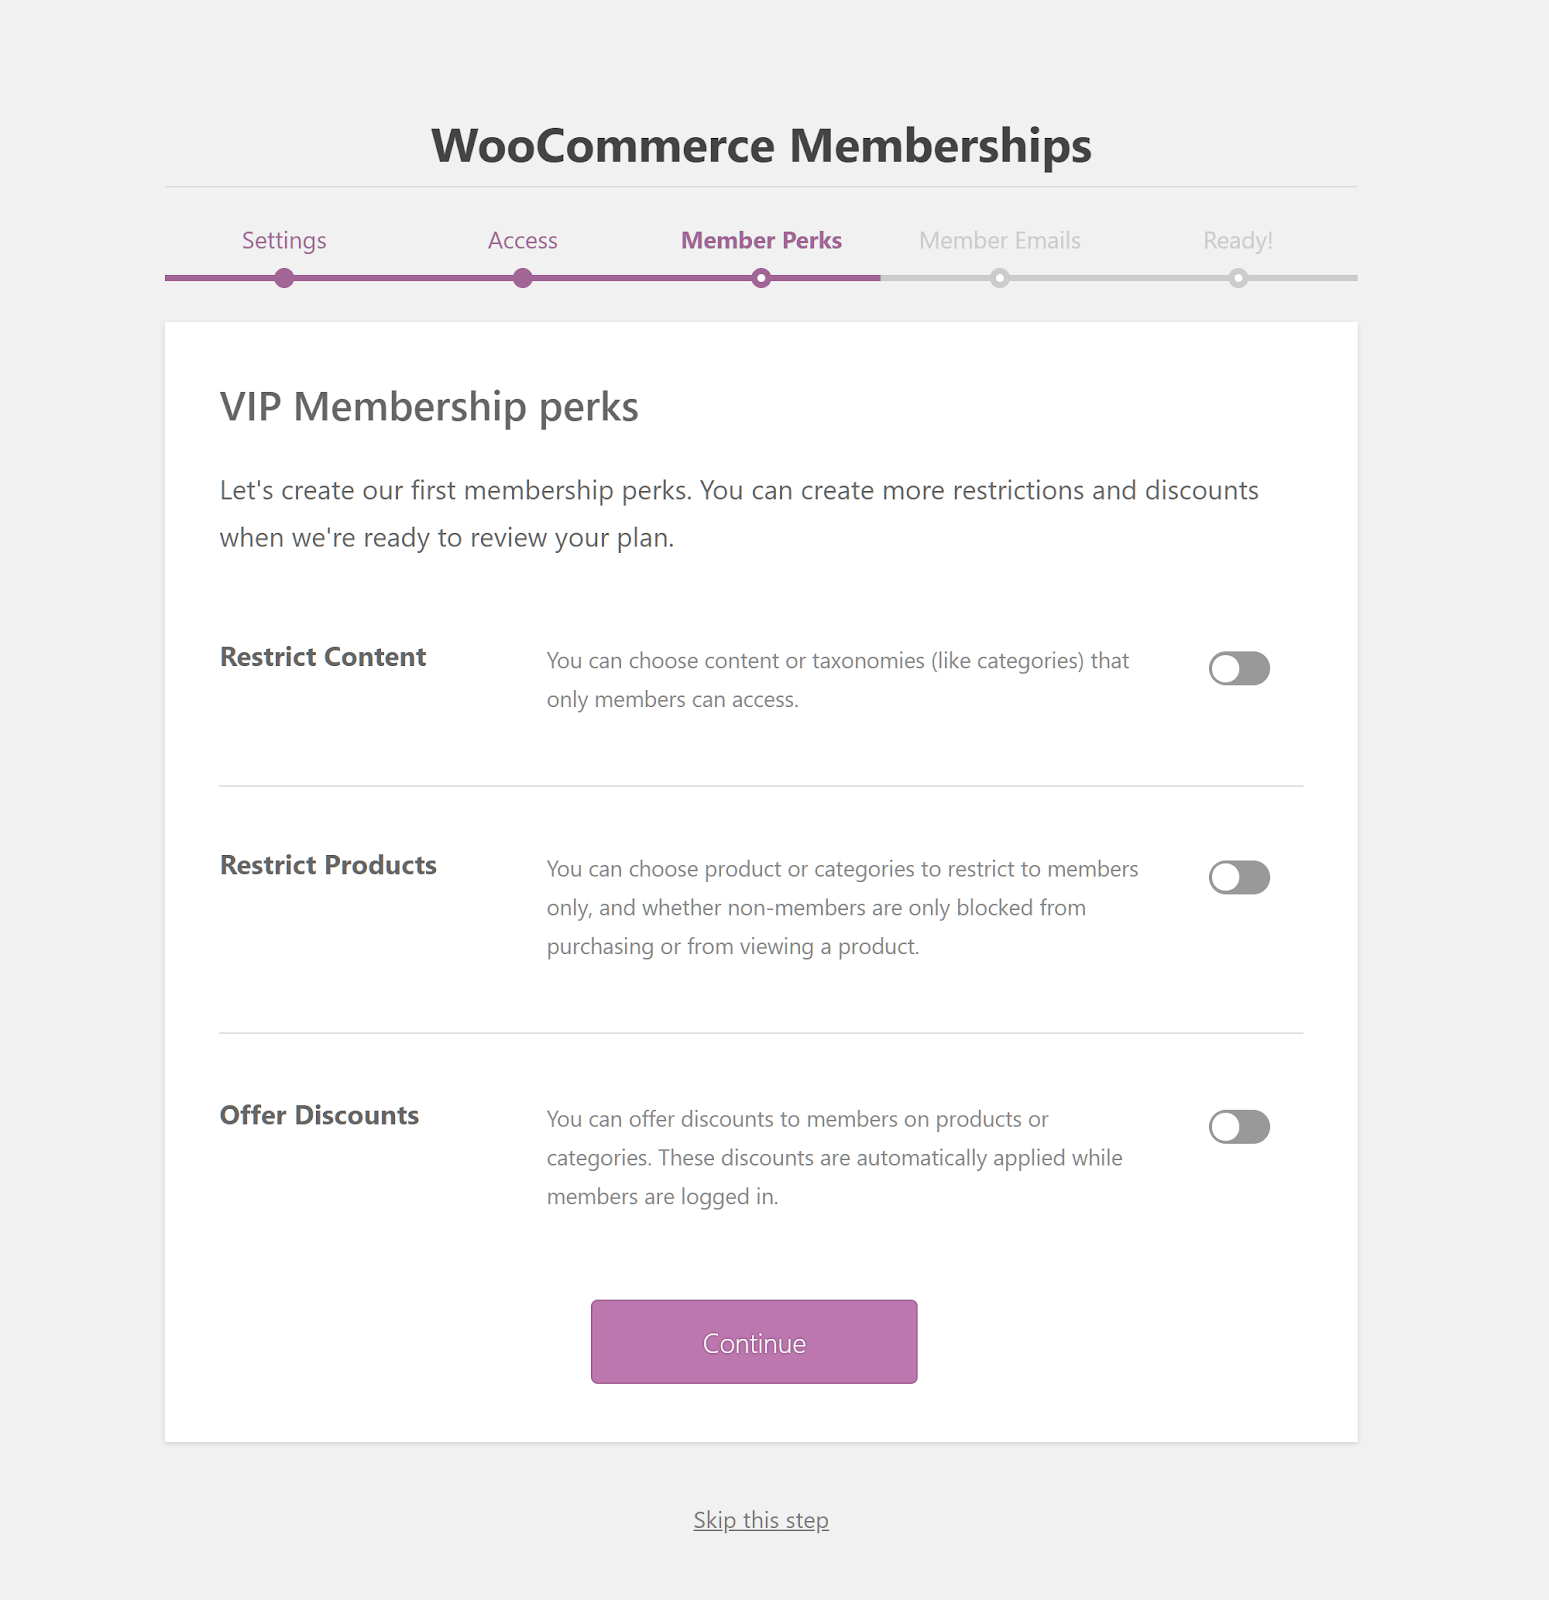 WooCommerce Memberships content restrictions.